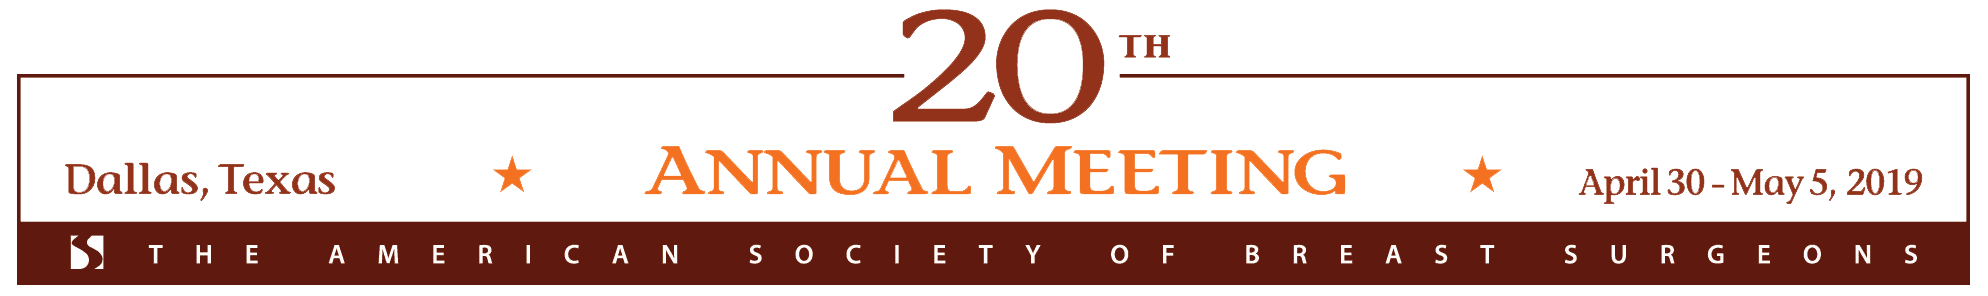 2019 Dallas Meeting Masthead